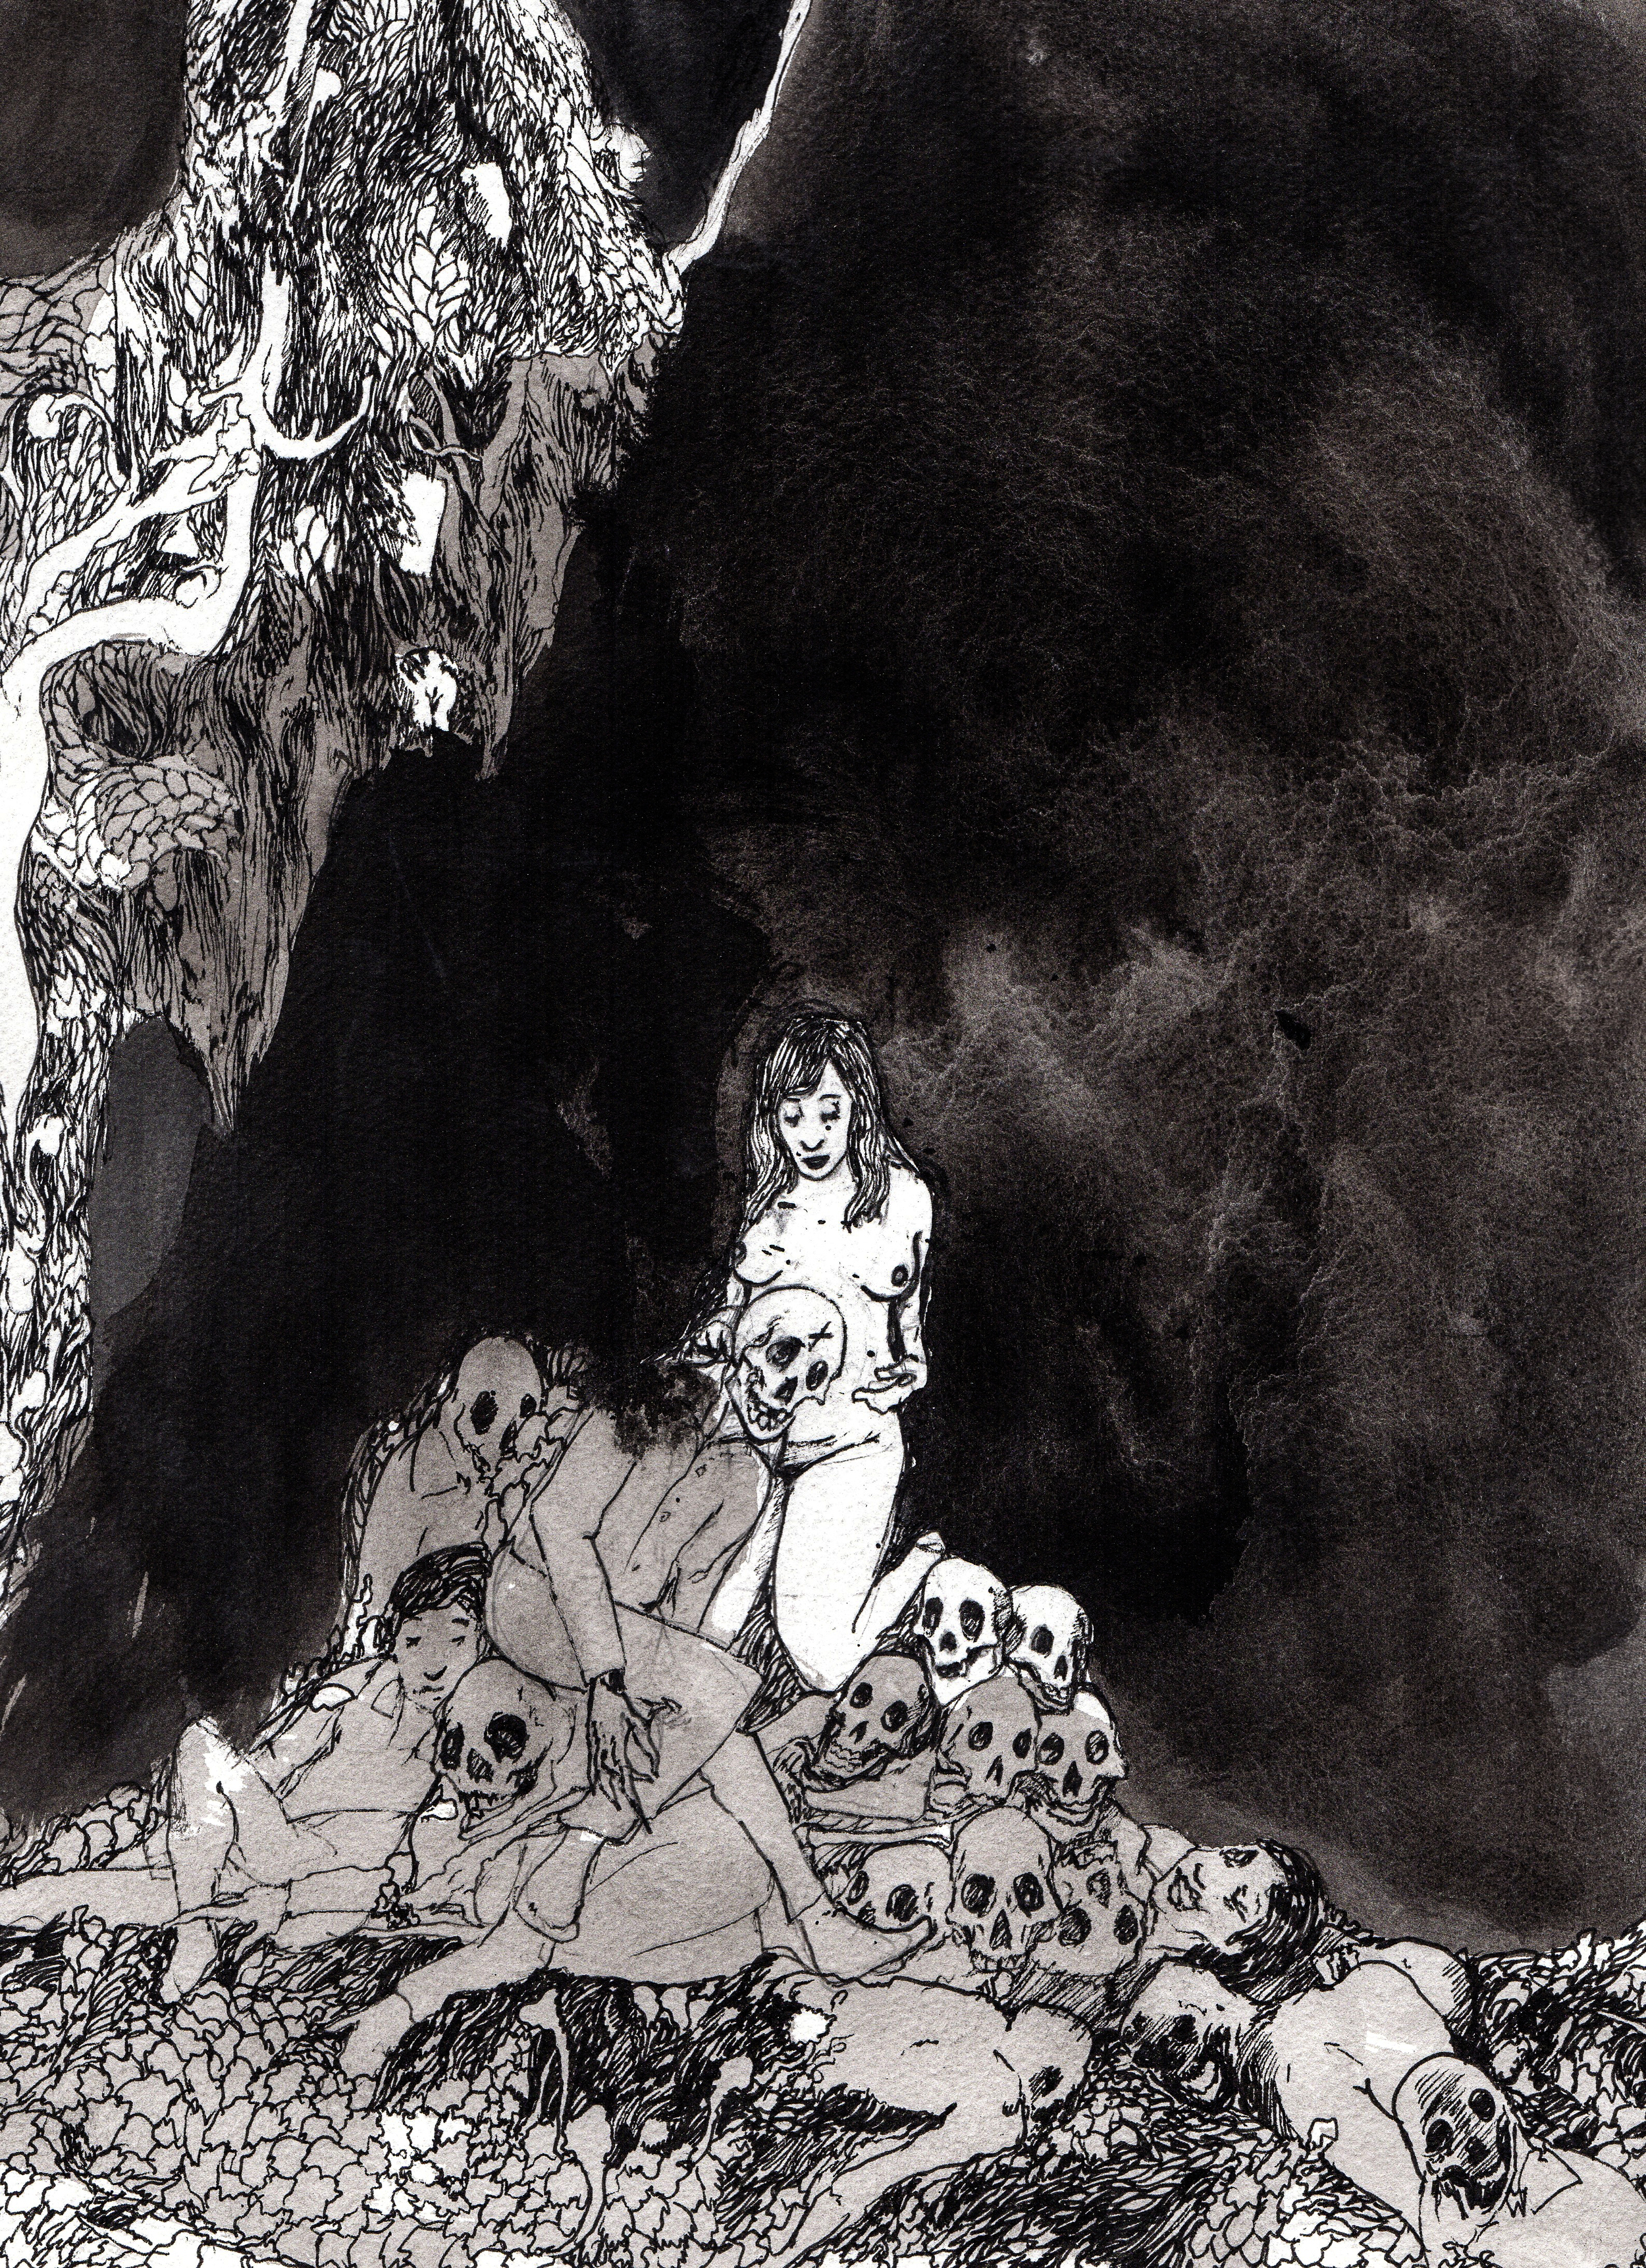 Silence of the Earth.  2013. 12 x 14 inches. Ink wash on paper.